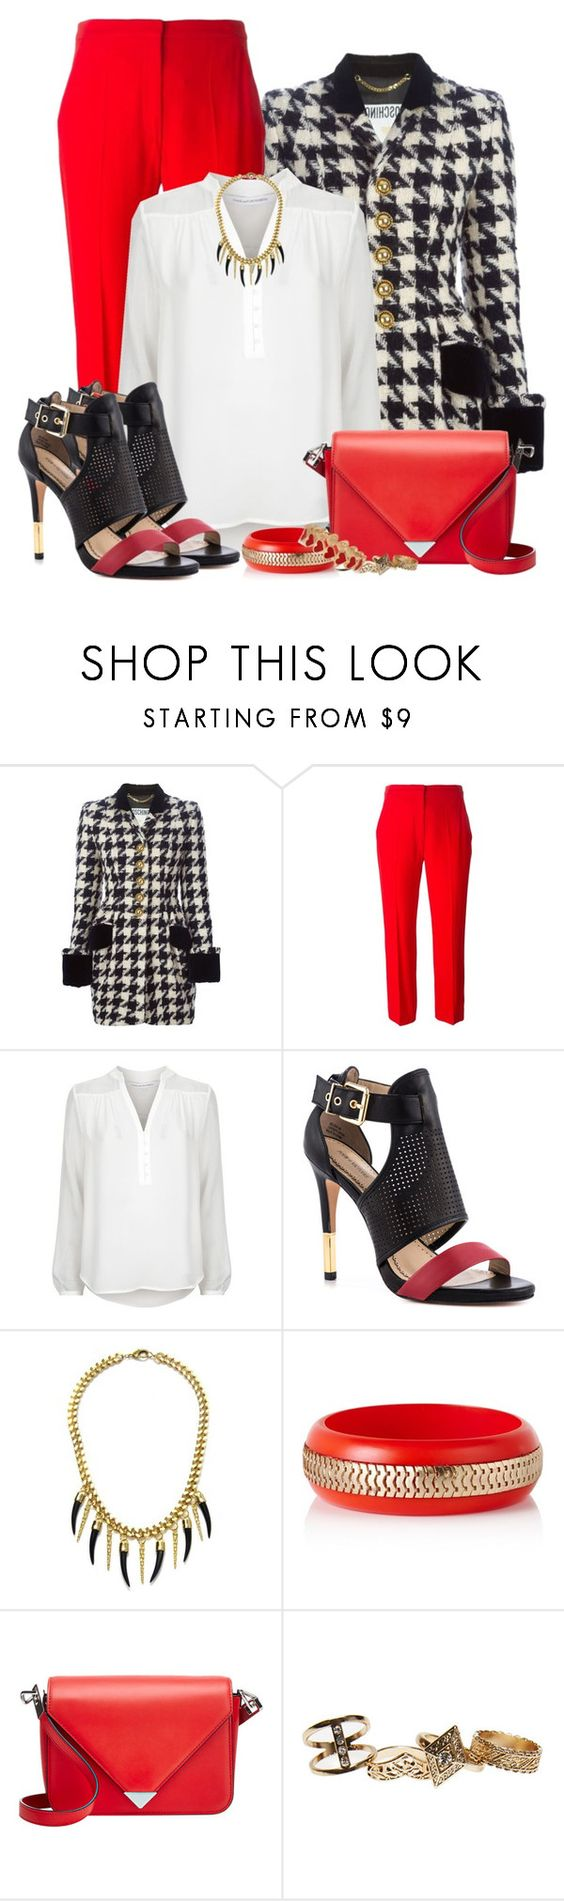 """""""Sem título #518"""" by luhmartins ❤ liked on Polyvore featuring Moschino, Alexander McQueen, Diane Von Furstenberg, Pour La Victoire, Alexander Wang, Wet Seal, Alison Lou, white, black and red"""